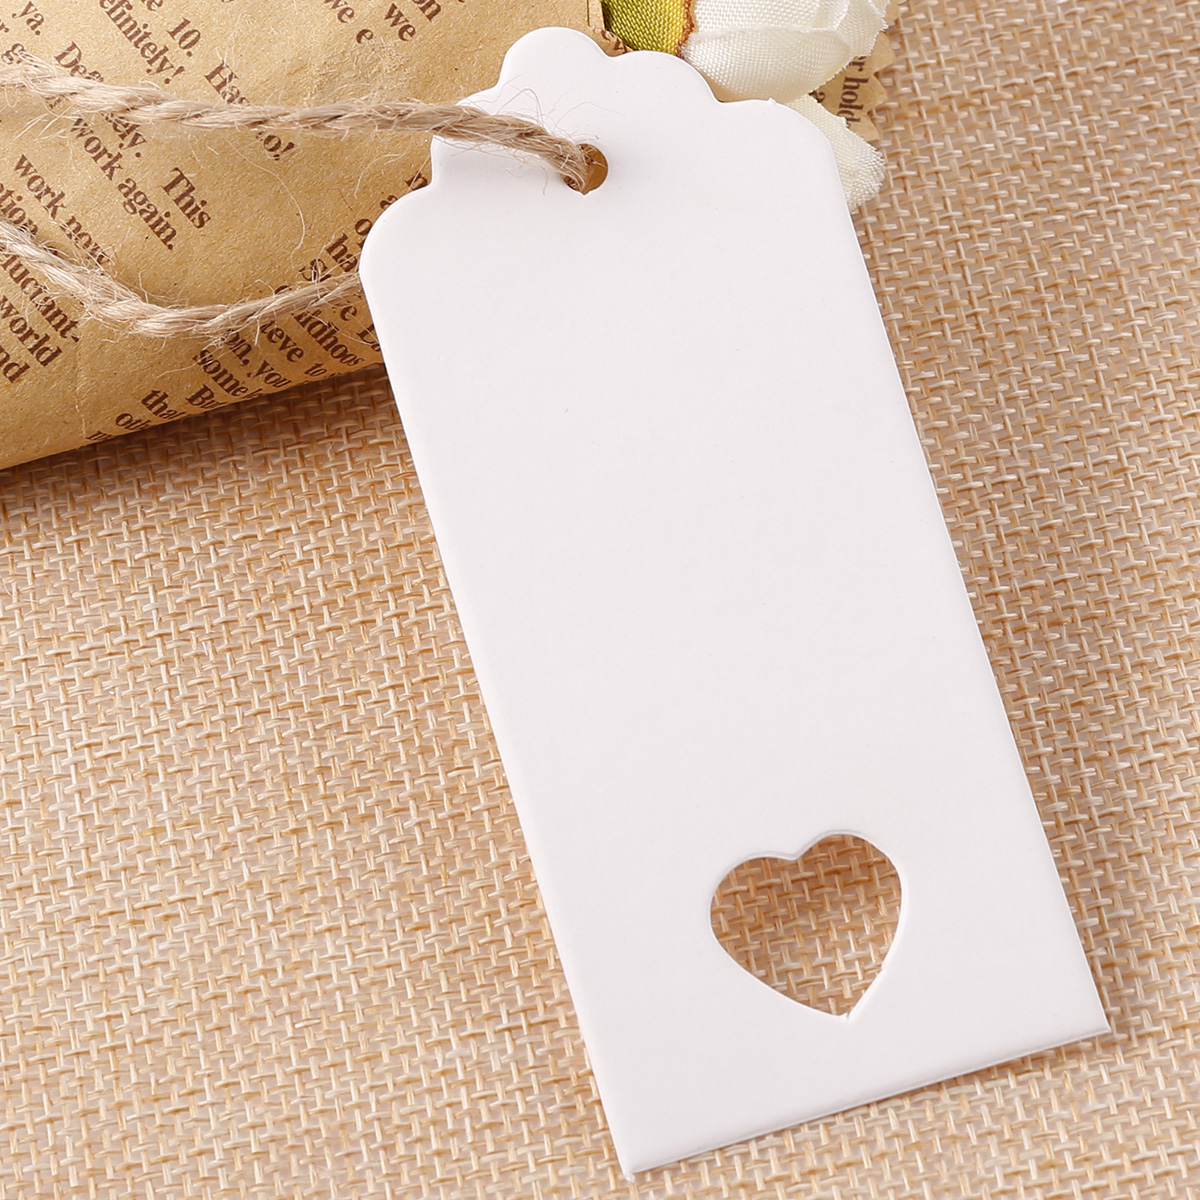 100X KRAFT PAPER GIFT TAGS WHTIE BLANK STRINGS WEDDING CANDY BOX ...